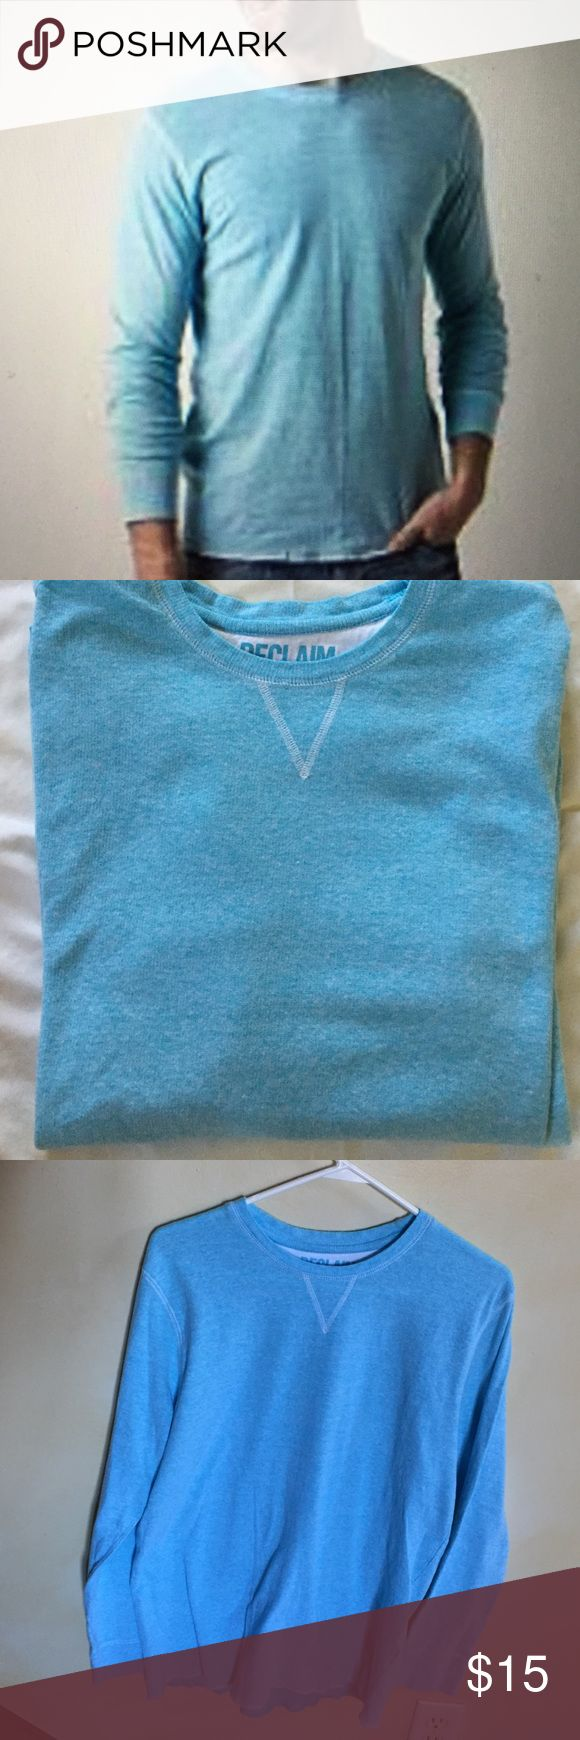 Men's Reclaim Standard Fit Henley Reclaim thermal Henley. Men's size XL standard fit. 100% cotton. Worn only a few times. Good condition. No signs of wear. Color is aqua/light blue. Purchased at Buckle store. Reclaim Shirts Tees - Long Sleeve